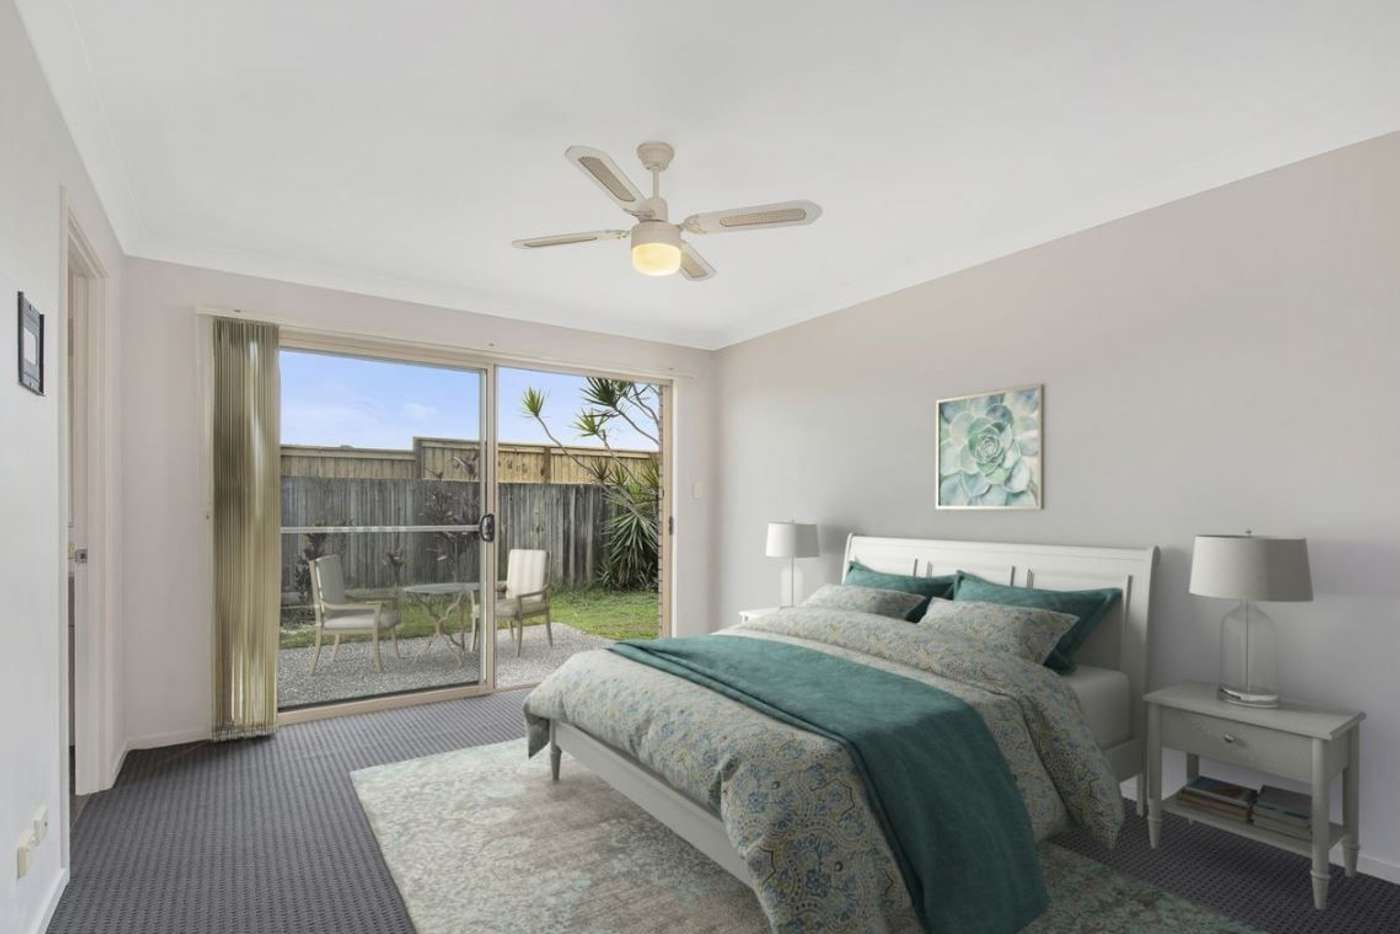 Sixth view of Homely house listing, 11 Lexey Crescent, Wakerley QLD 4154